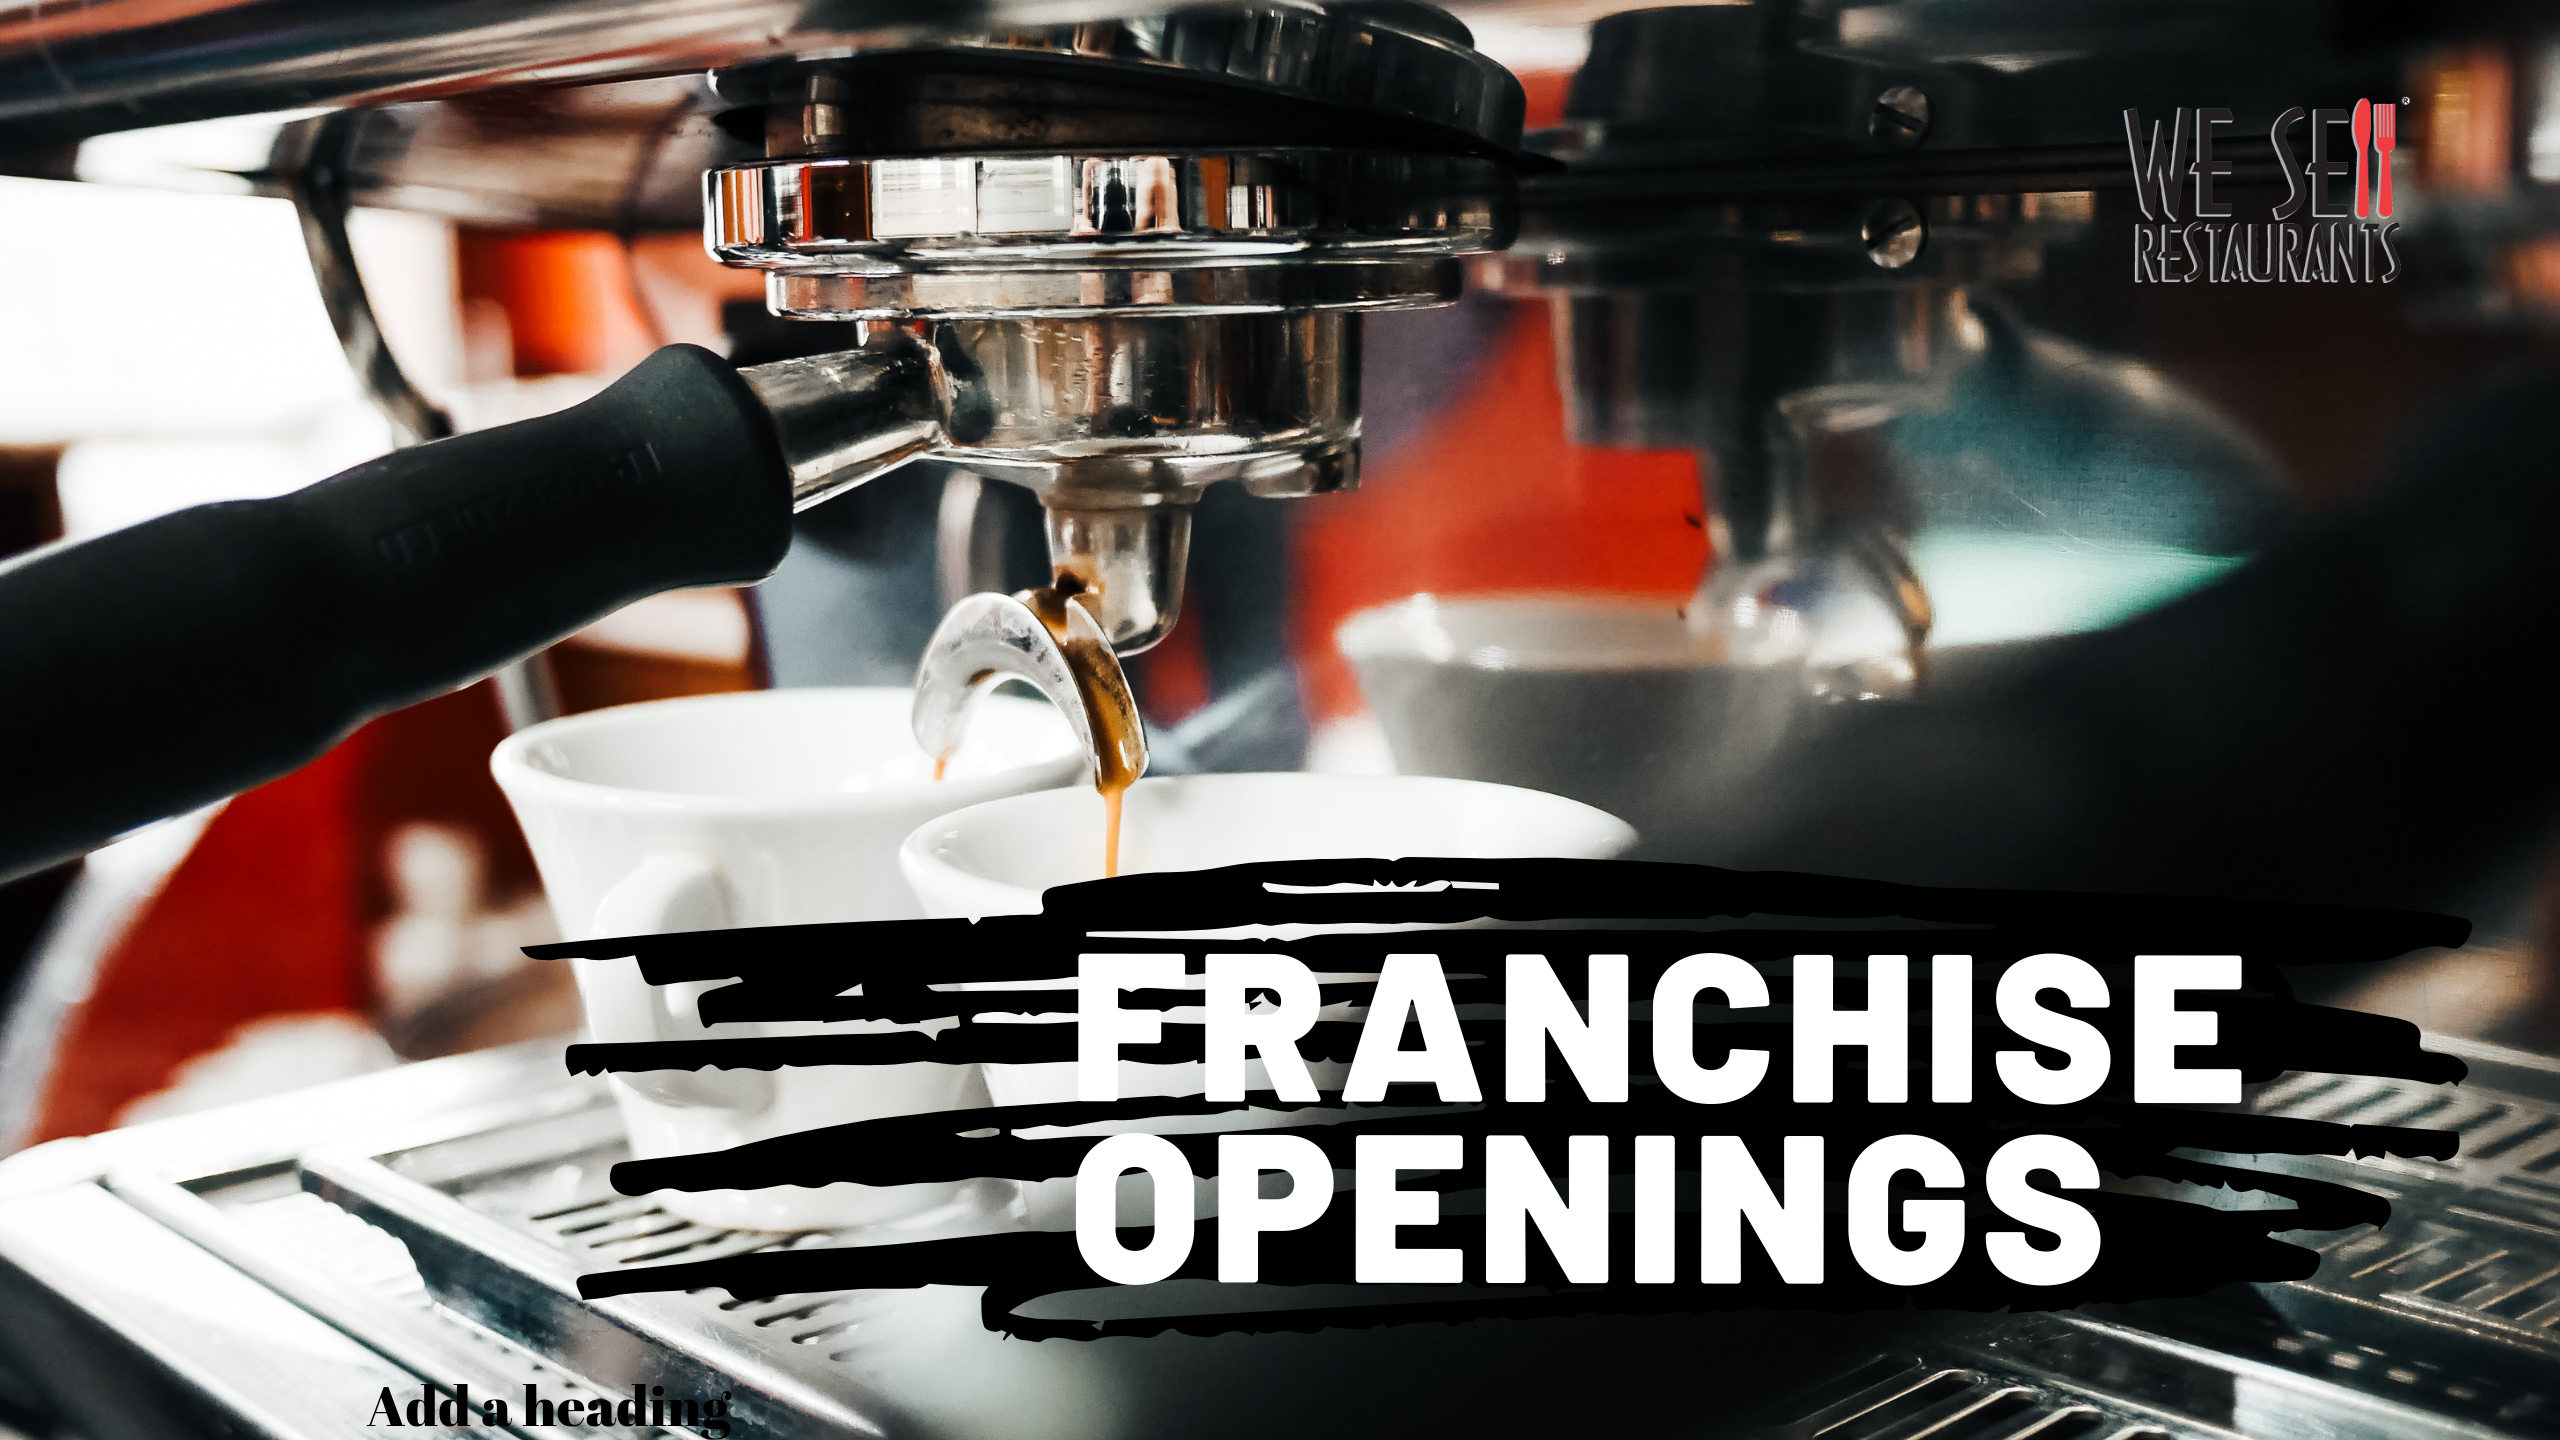 Franchise openings